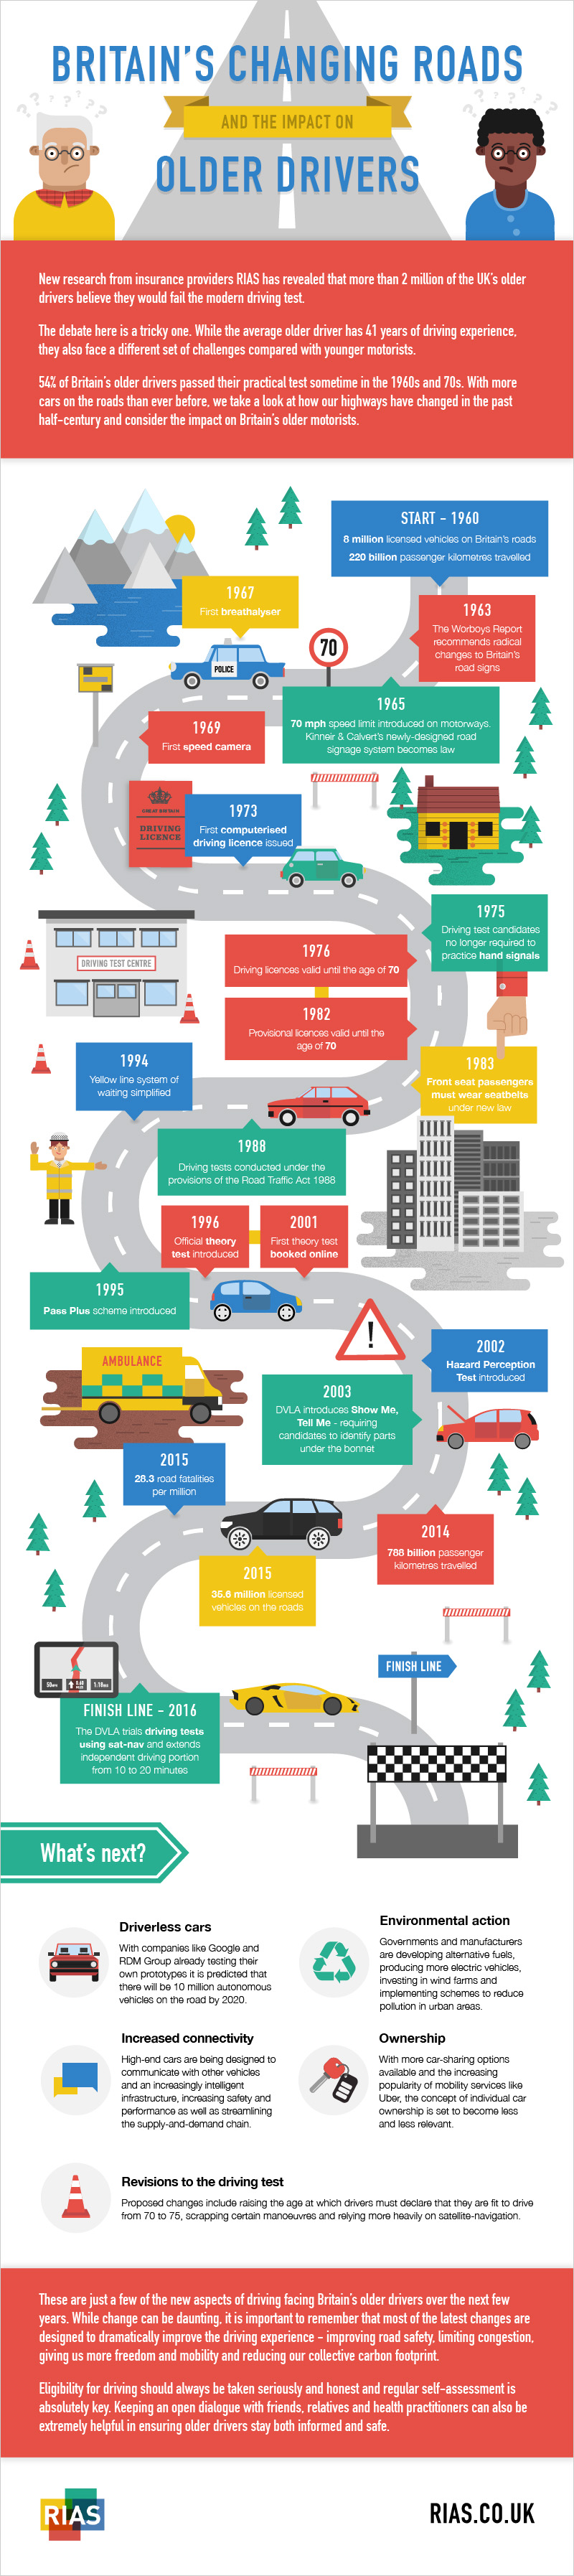 Britain's Changing Roads [Infographic]